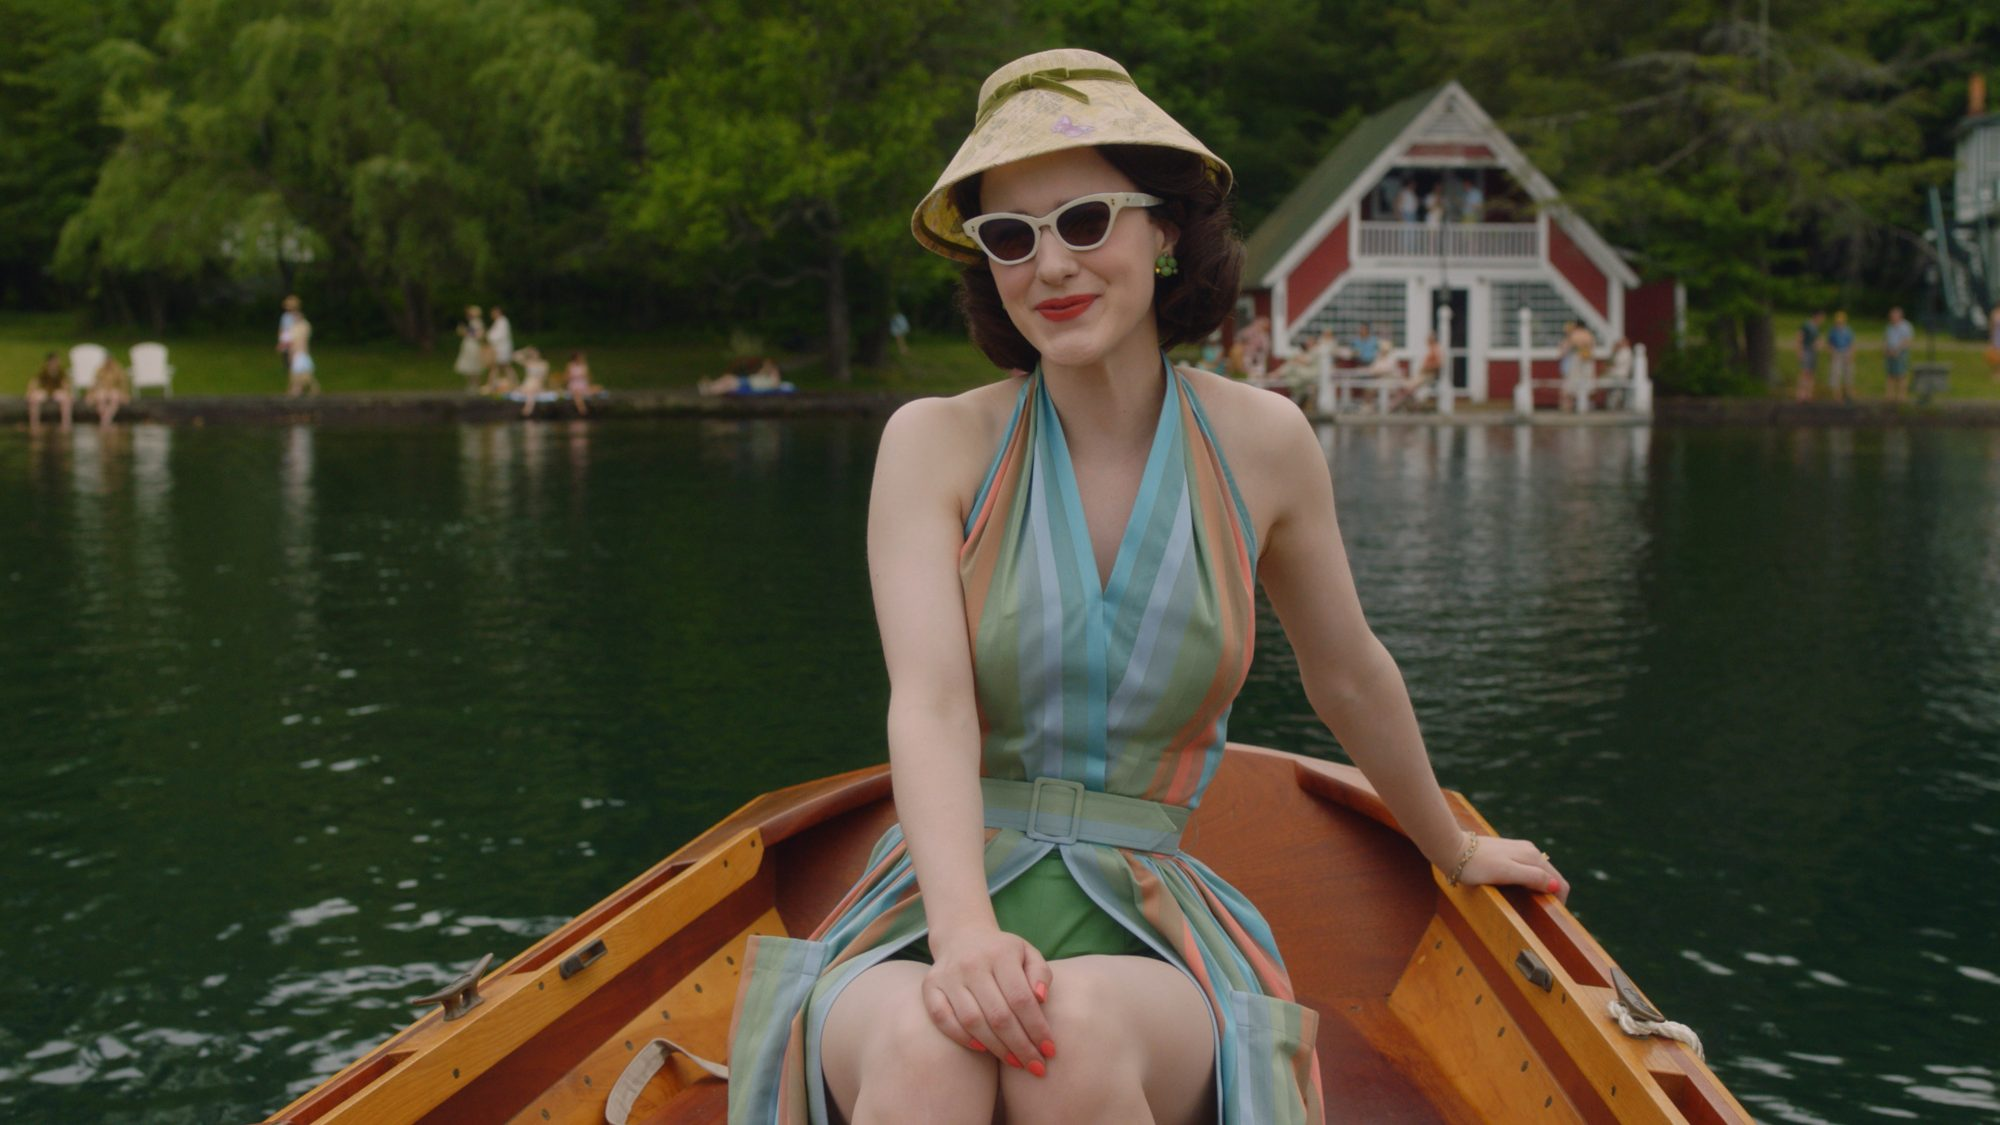 The Marvelous Mrs. Maisel Catskills Lake